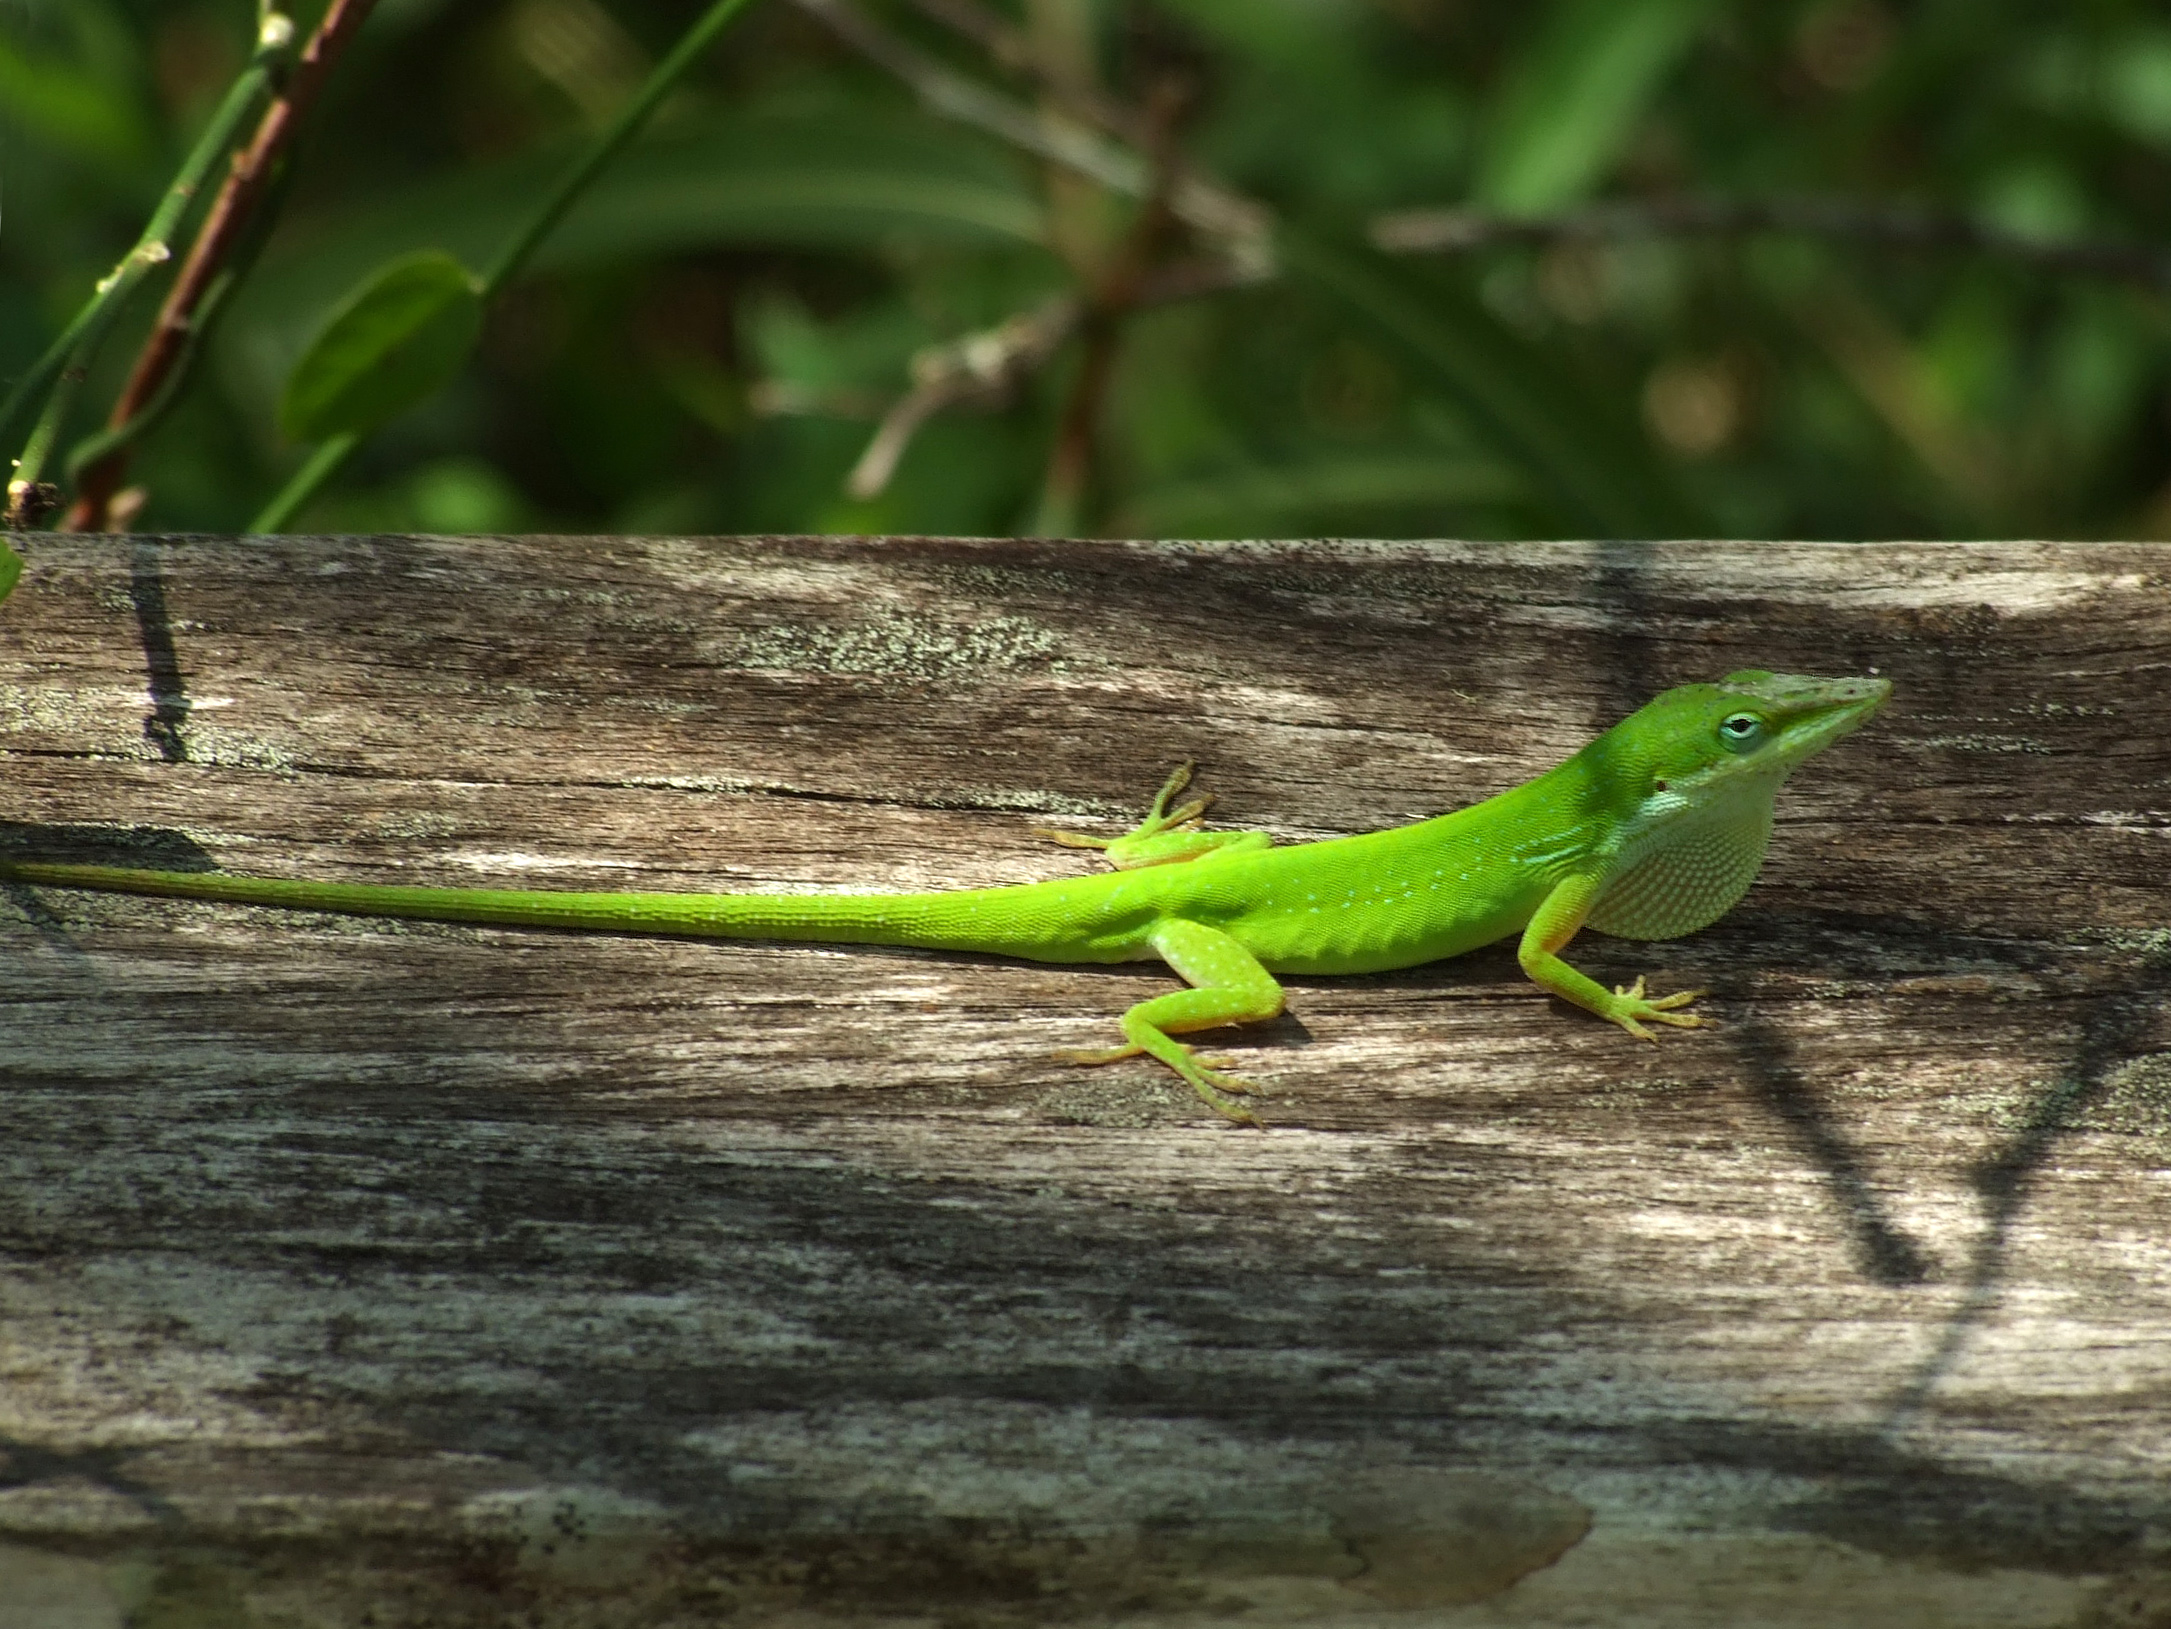 how to catch an anole